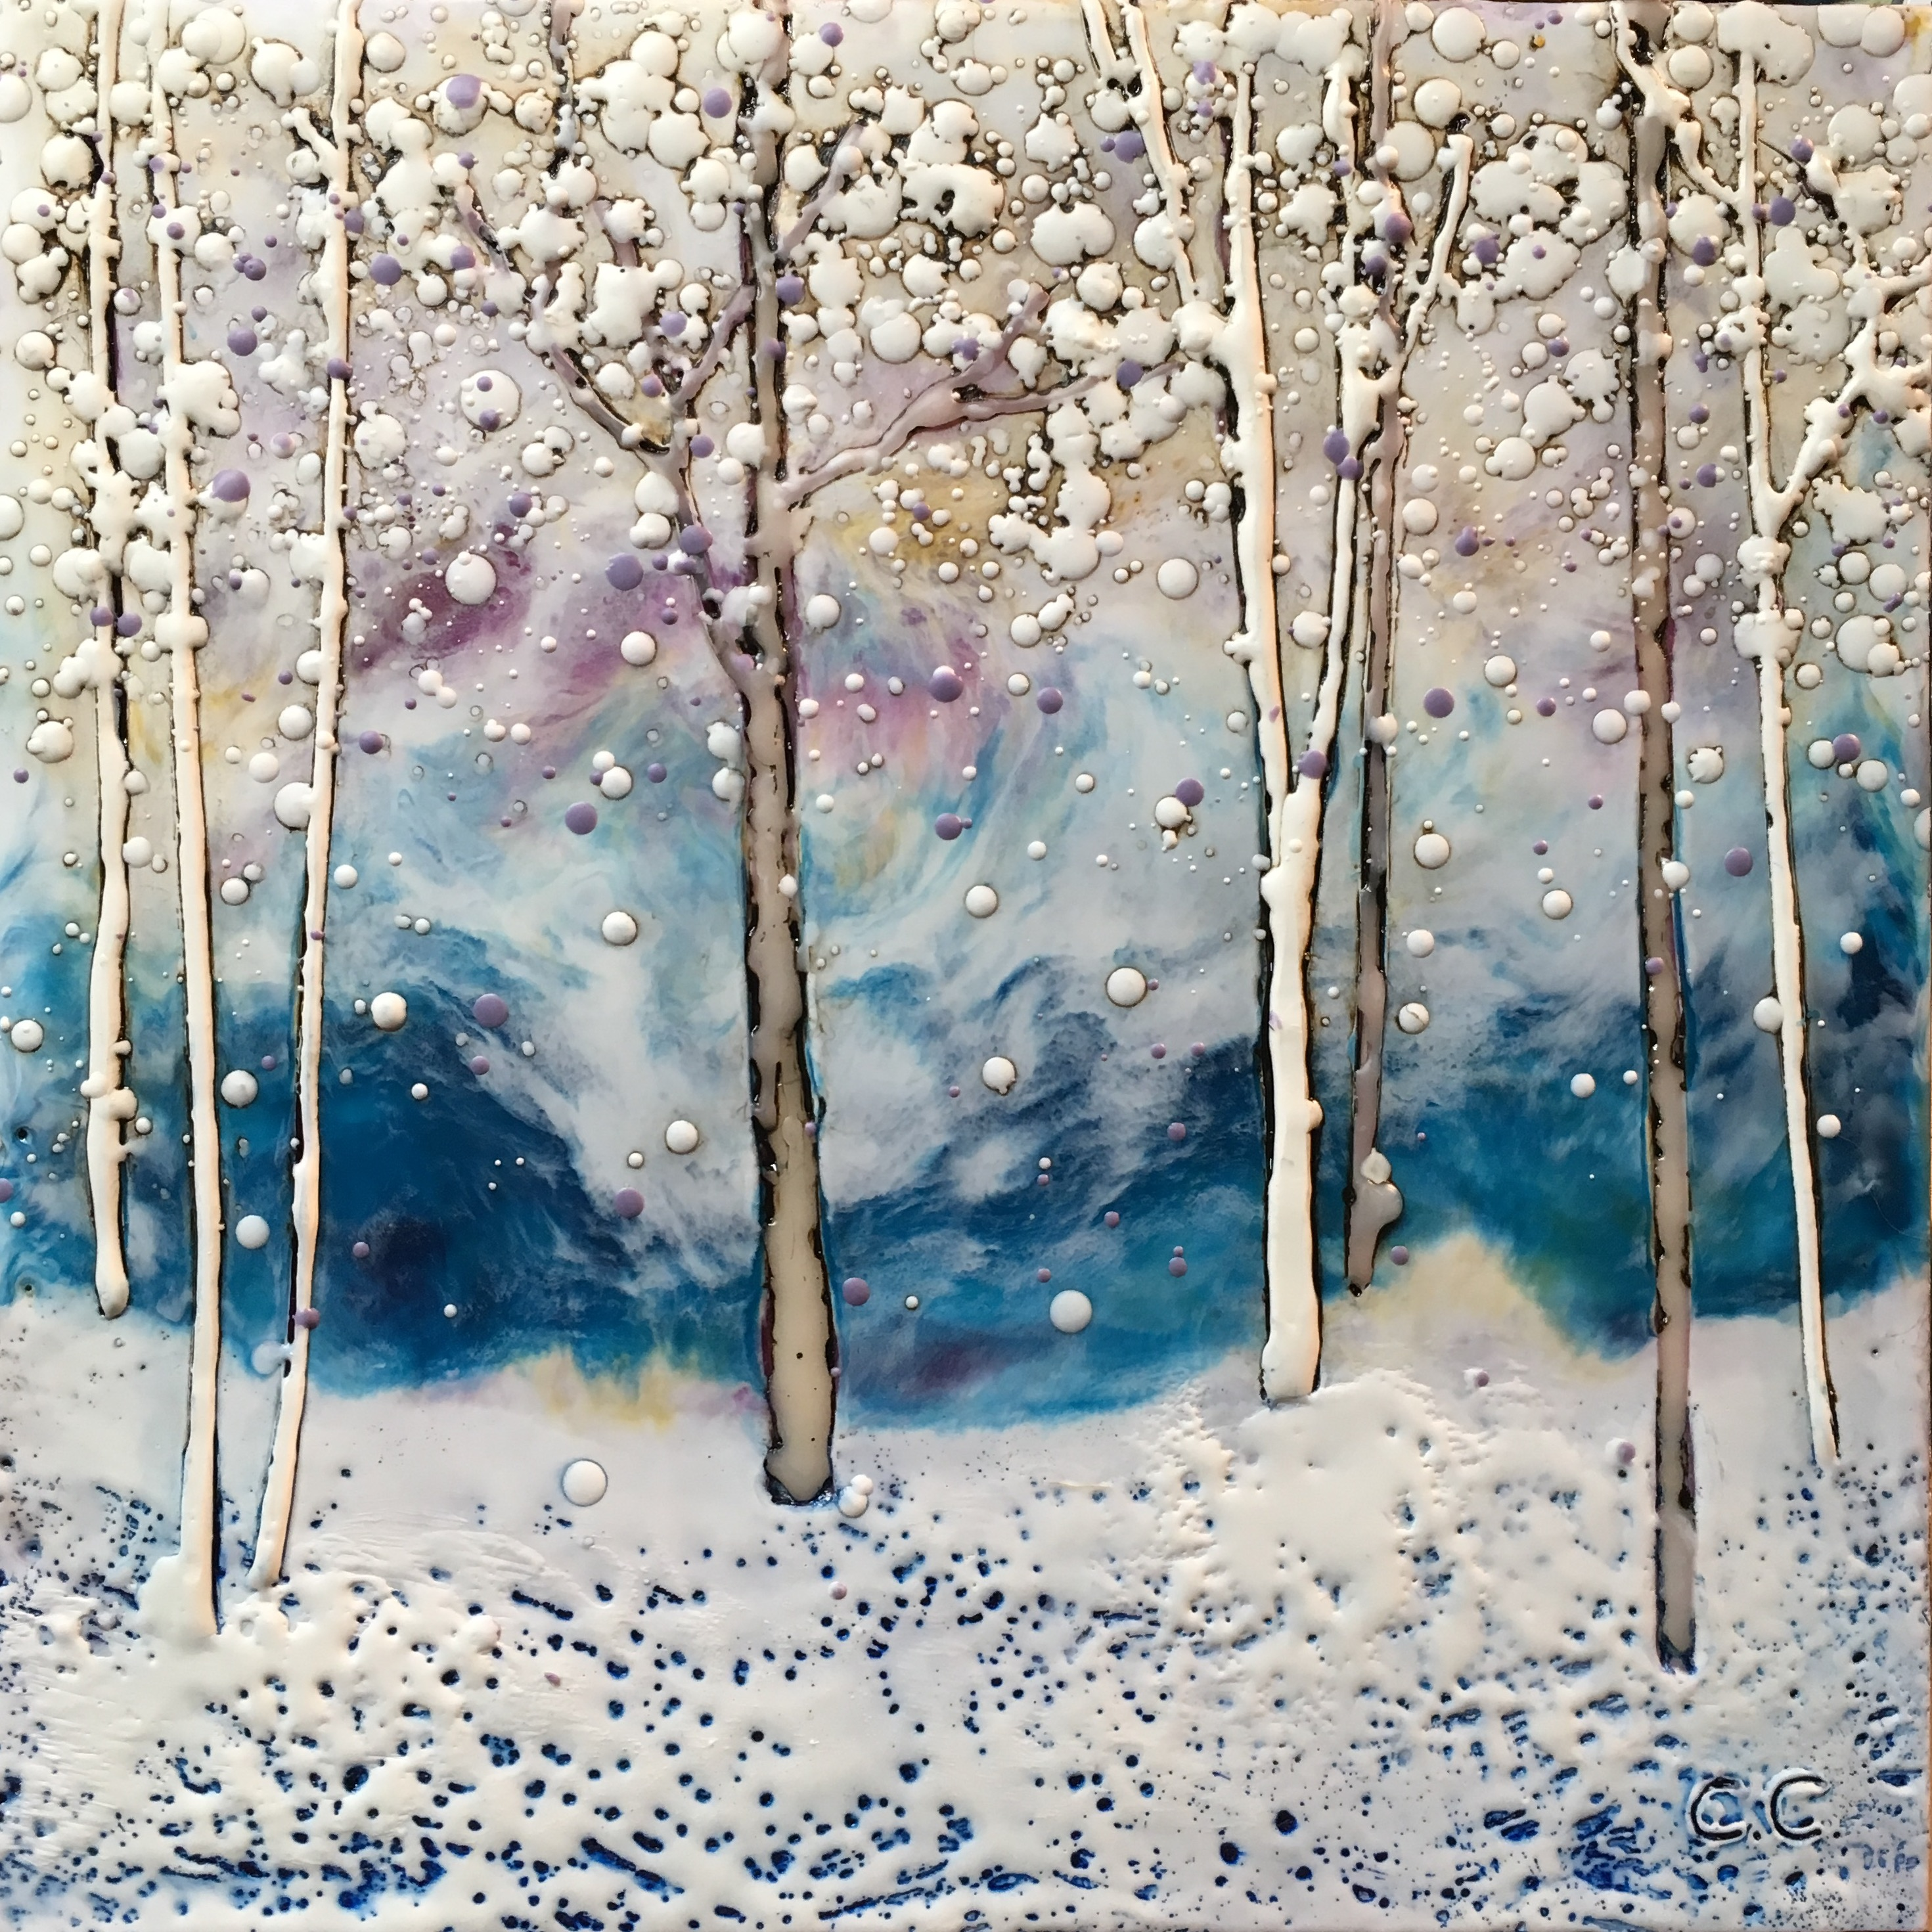 Renewed Confidence, encaustic painting by Catharine Clarke | Effusion Art Gallery + Cast Glass Studio, Invermere BC